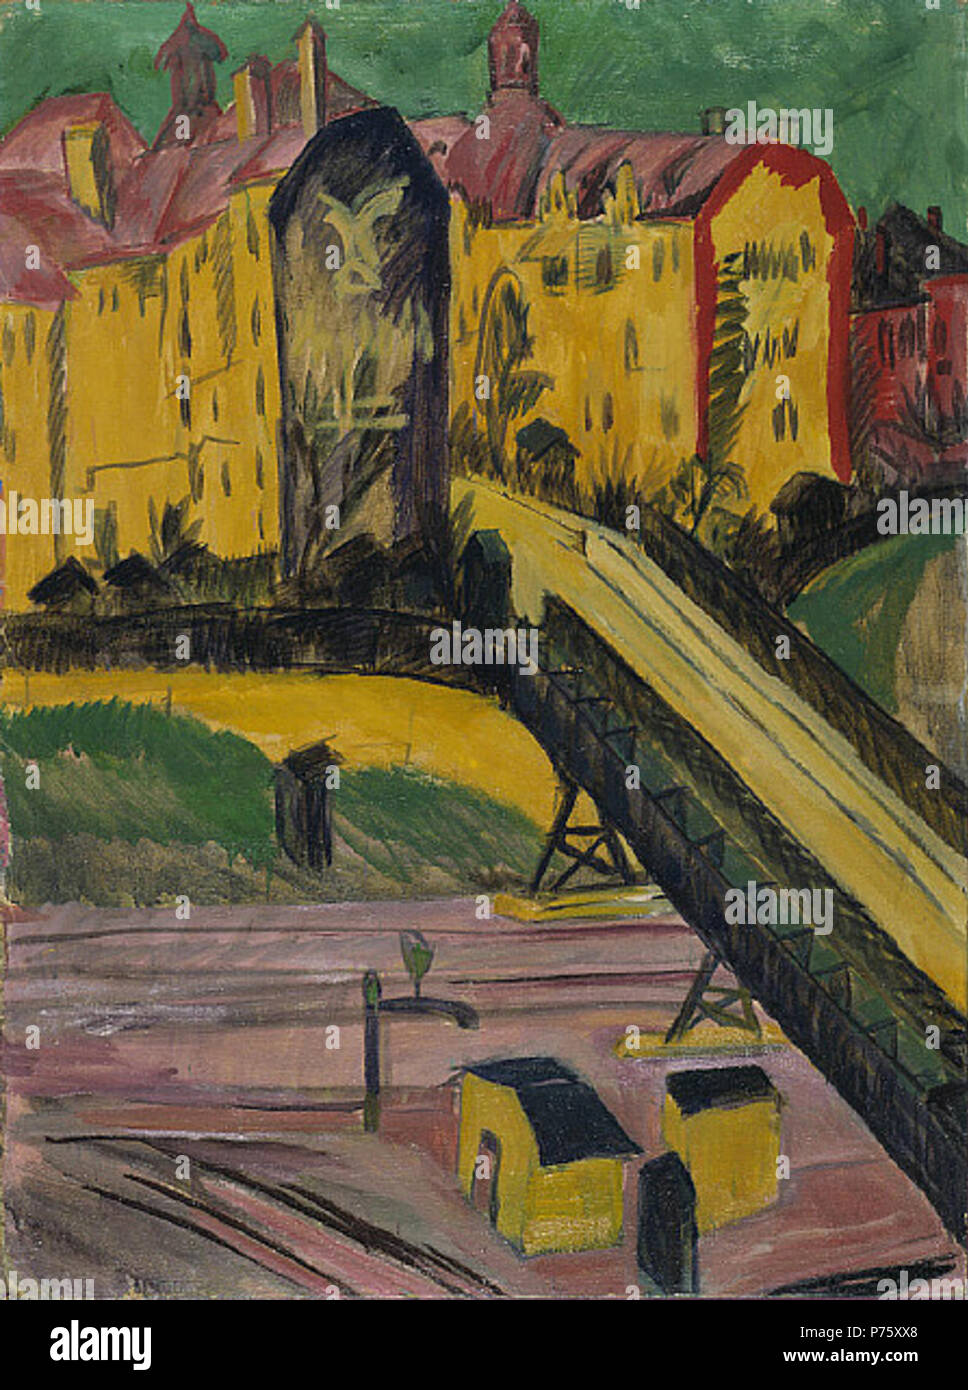 .  English: View from the Window Deutsch: Blick aus dem Fenster  1914 10 Ernst Ludwig Kirchner - View from the Window Stock Photo